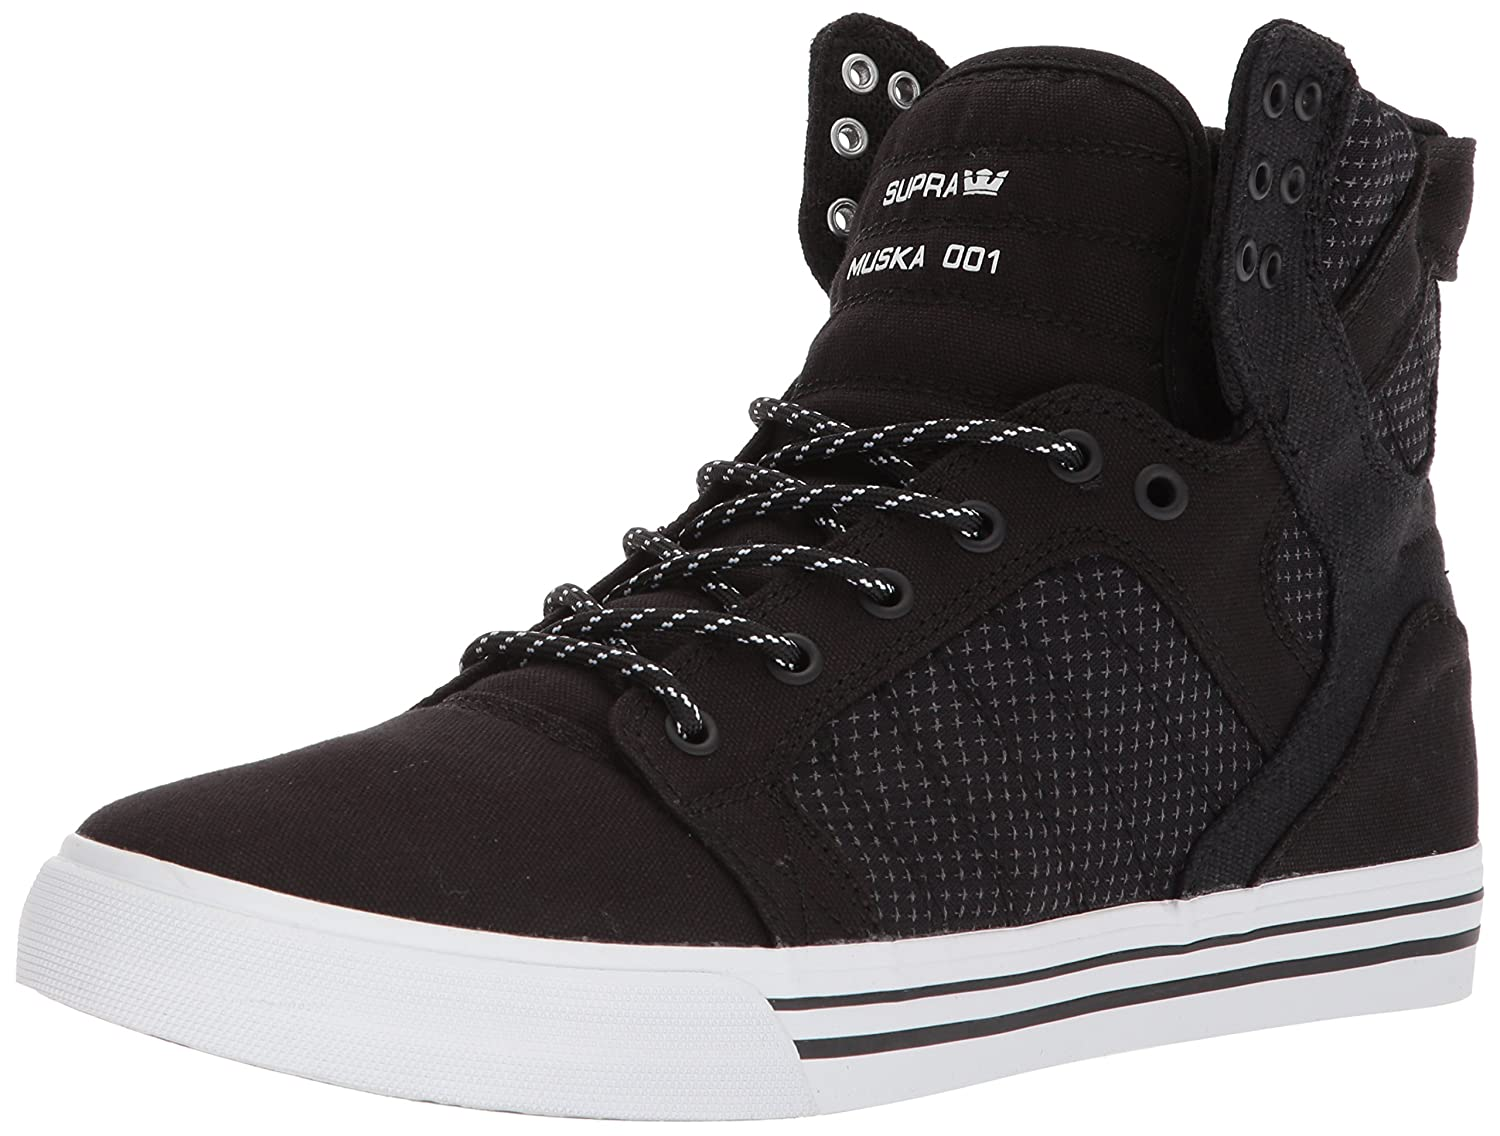 Supra Skytop Skate Shoe B074KJ9D9Z 6 M US|Black/Dark Grey/White